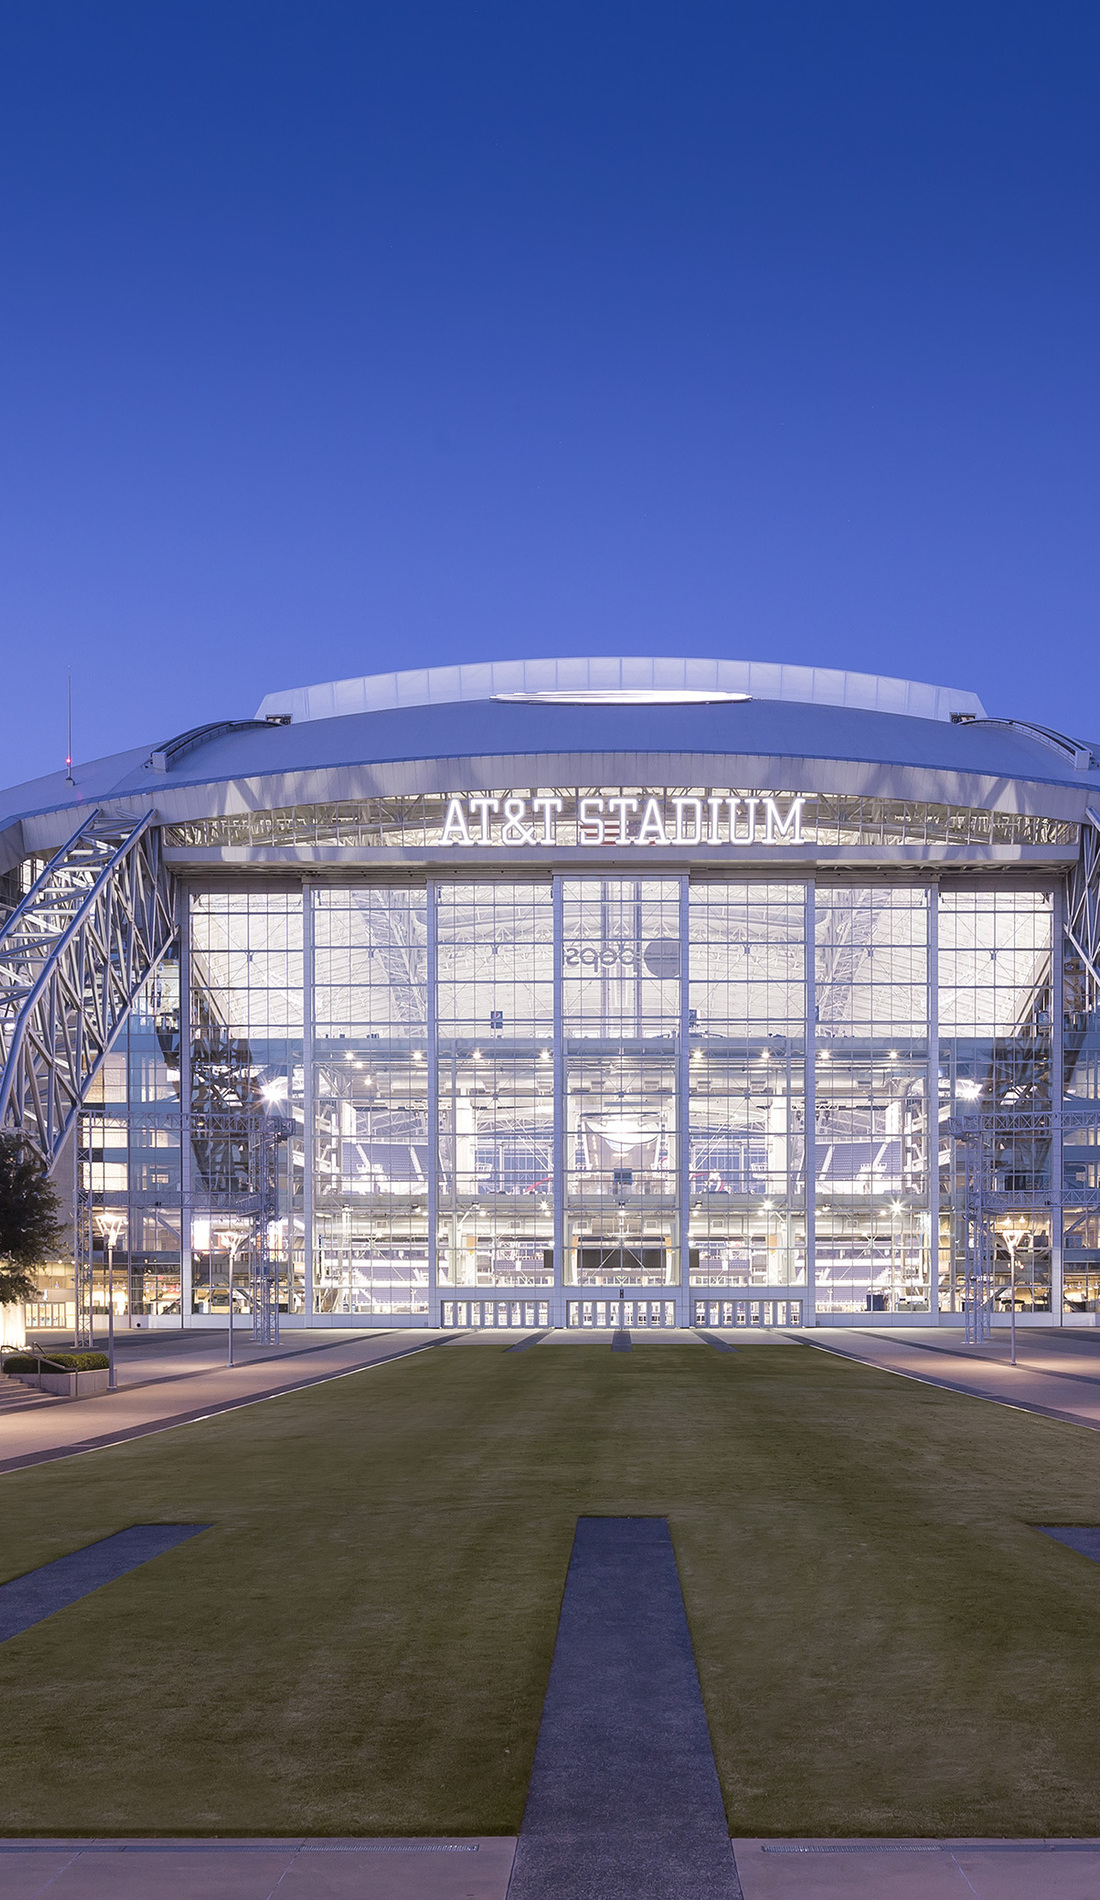 A Dallas Cowboys live event